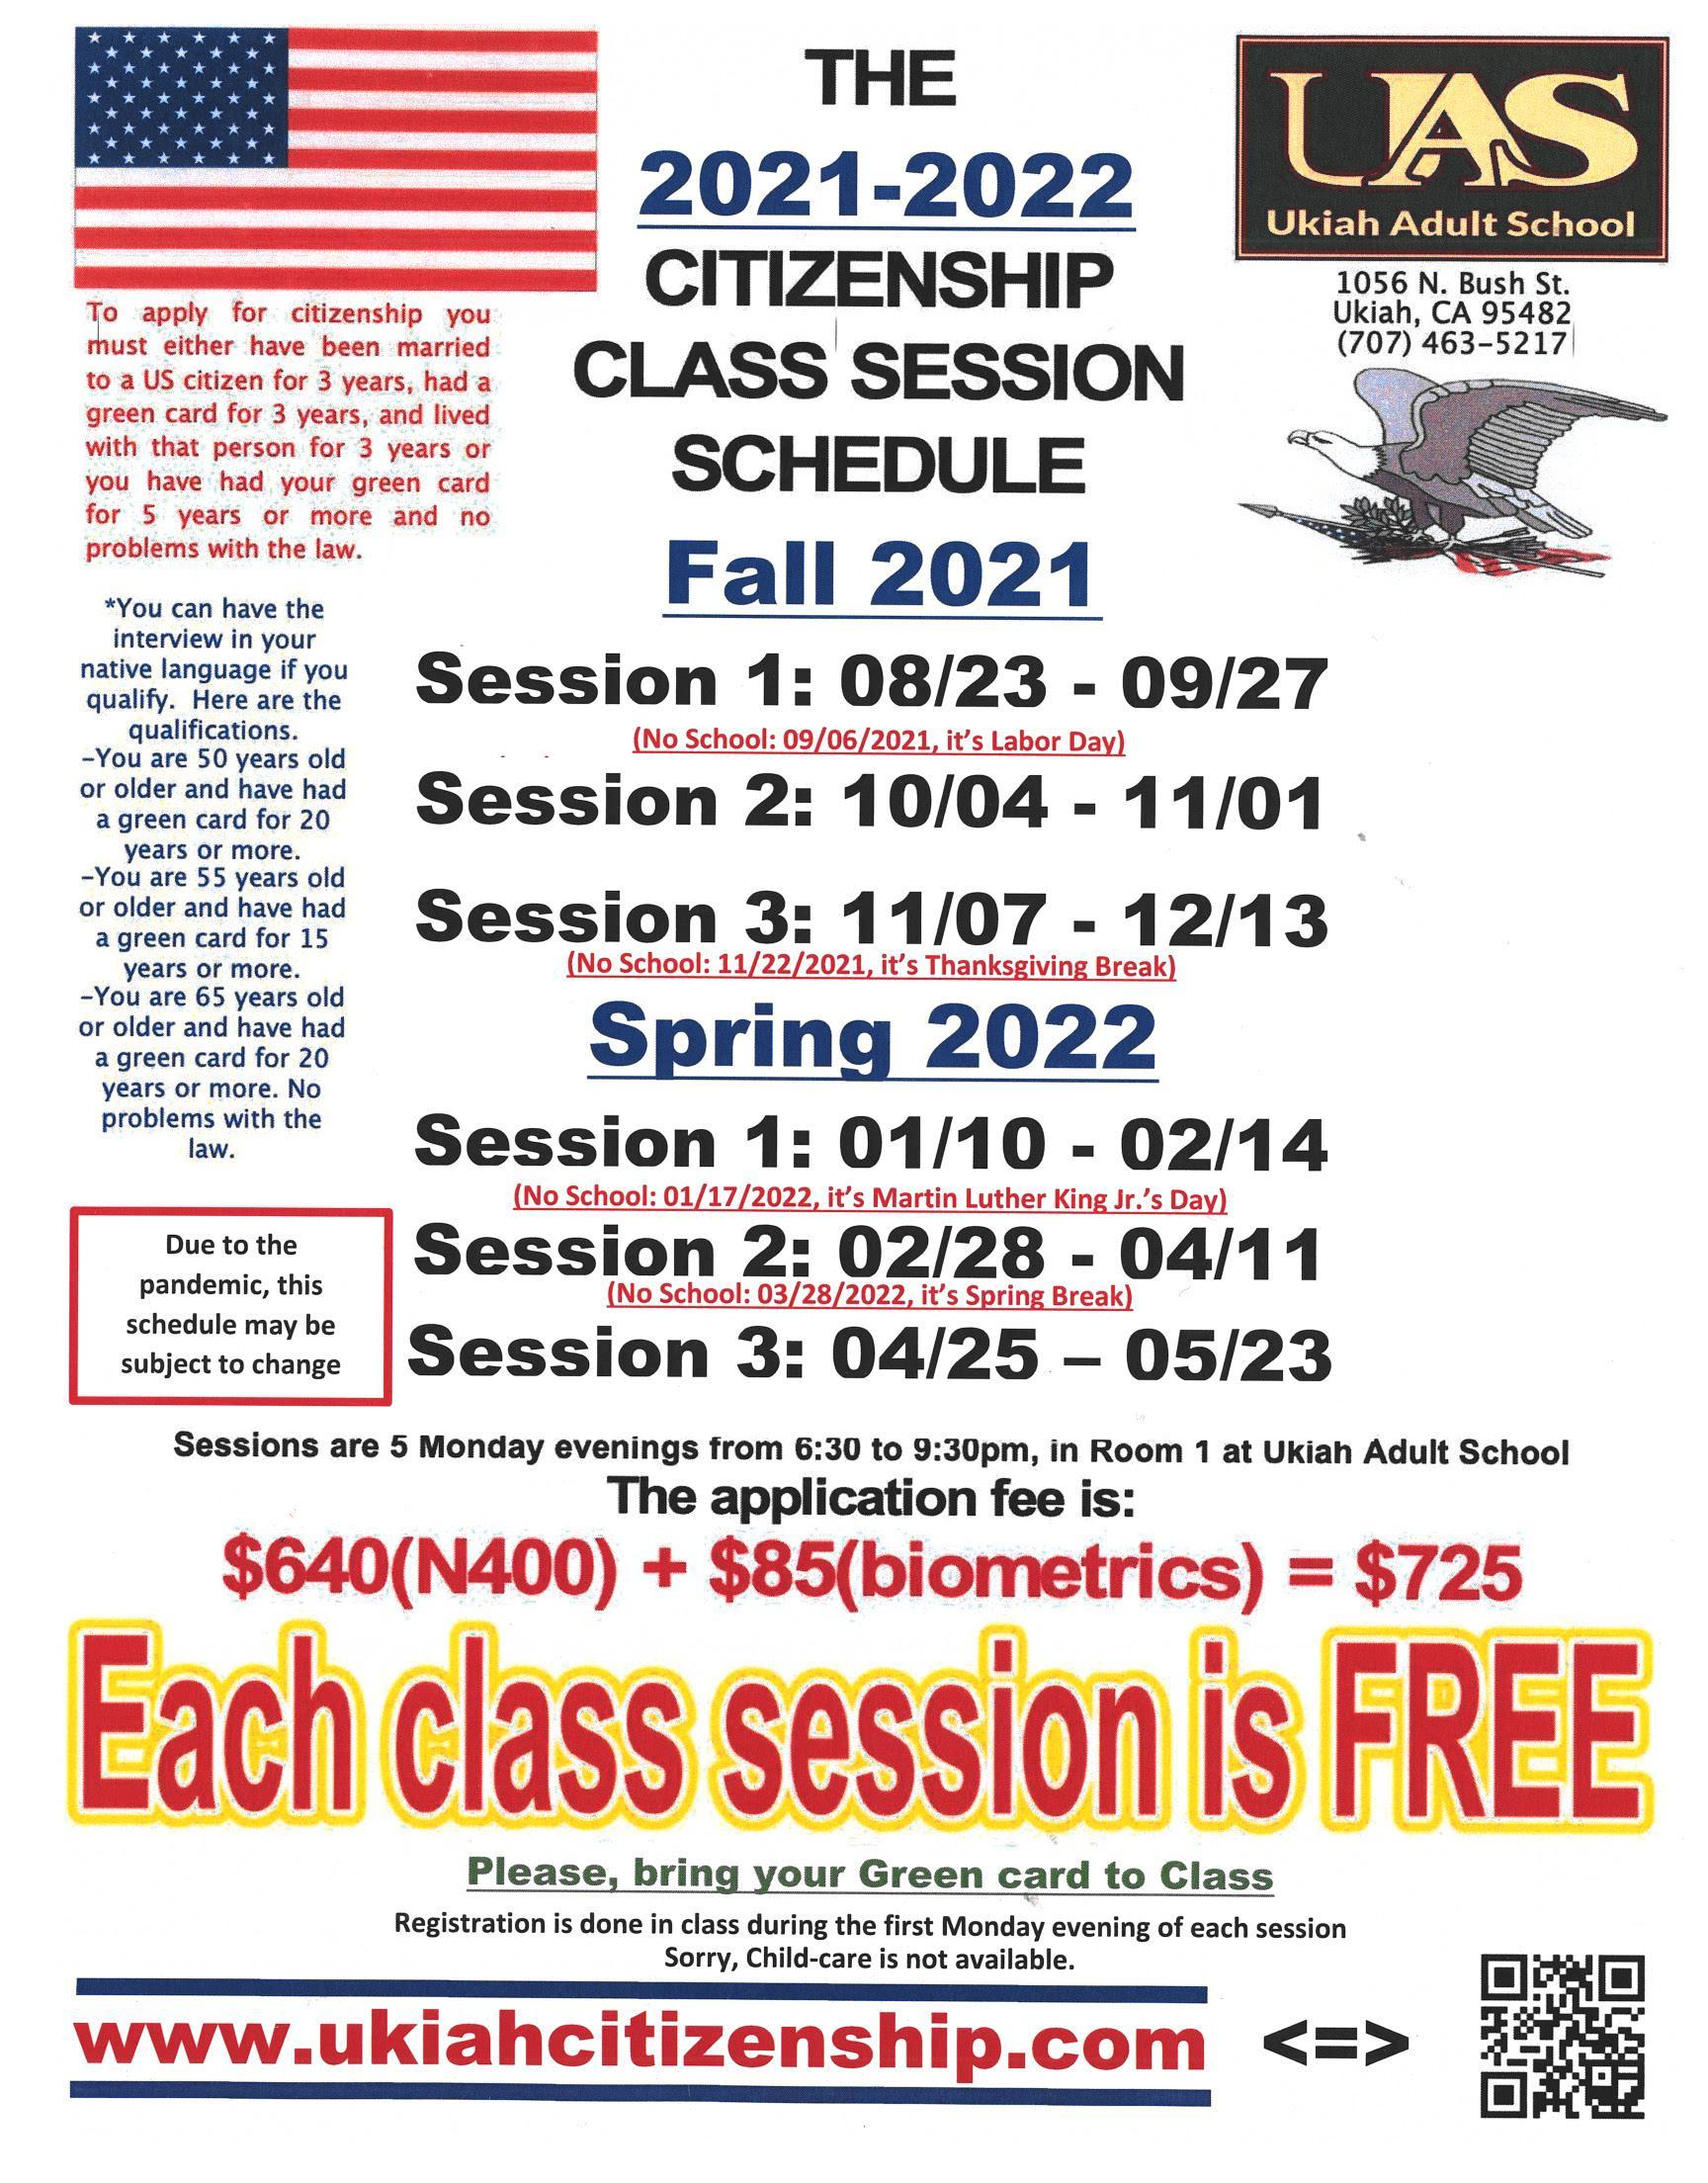 2021-2022 Citizenship Class Session Schedule poster.  The first session will start August 23, 2021 and end September 2, 2021.